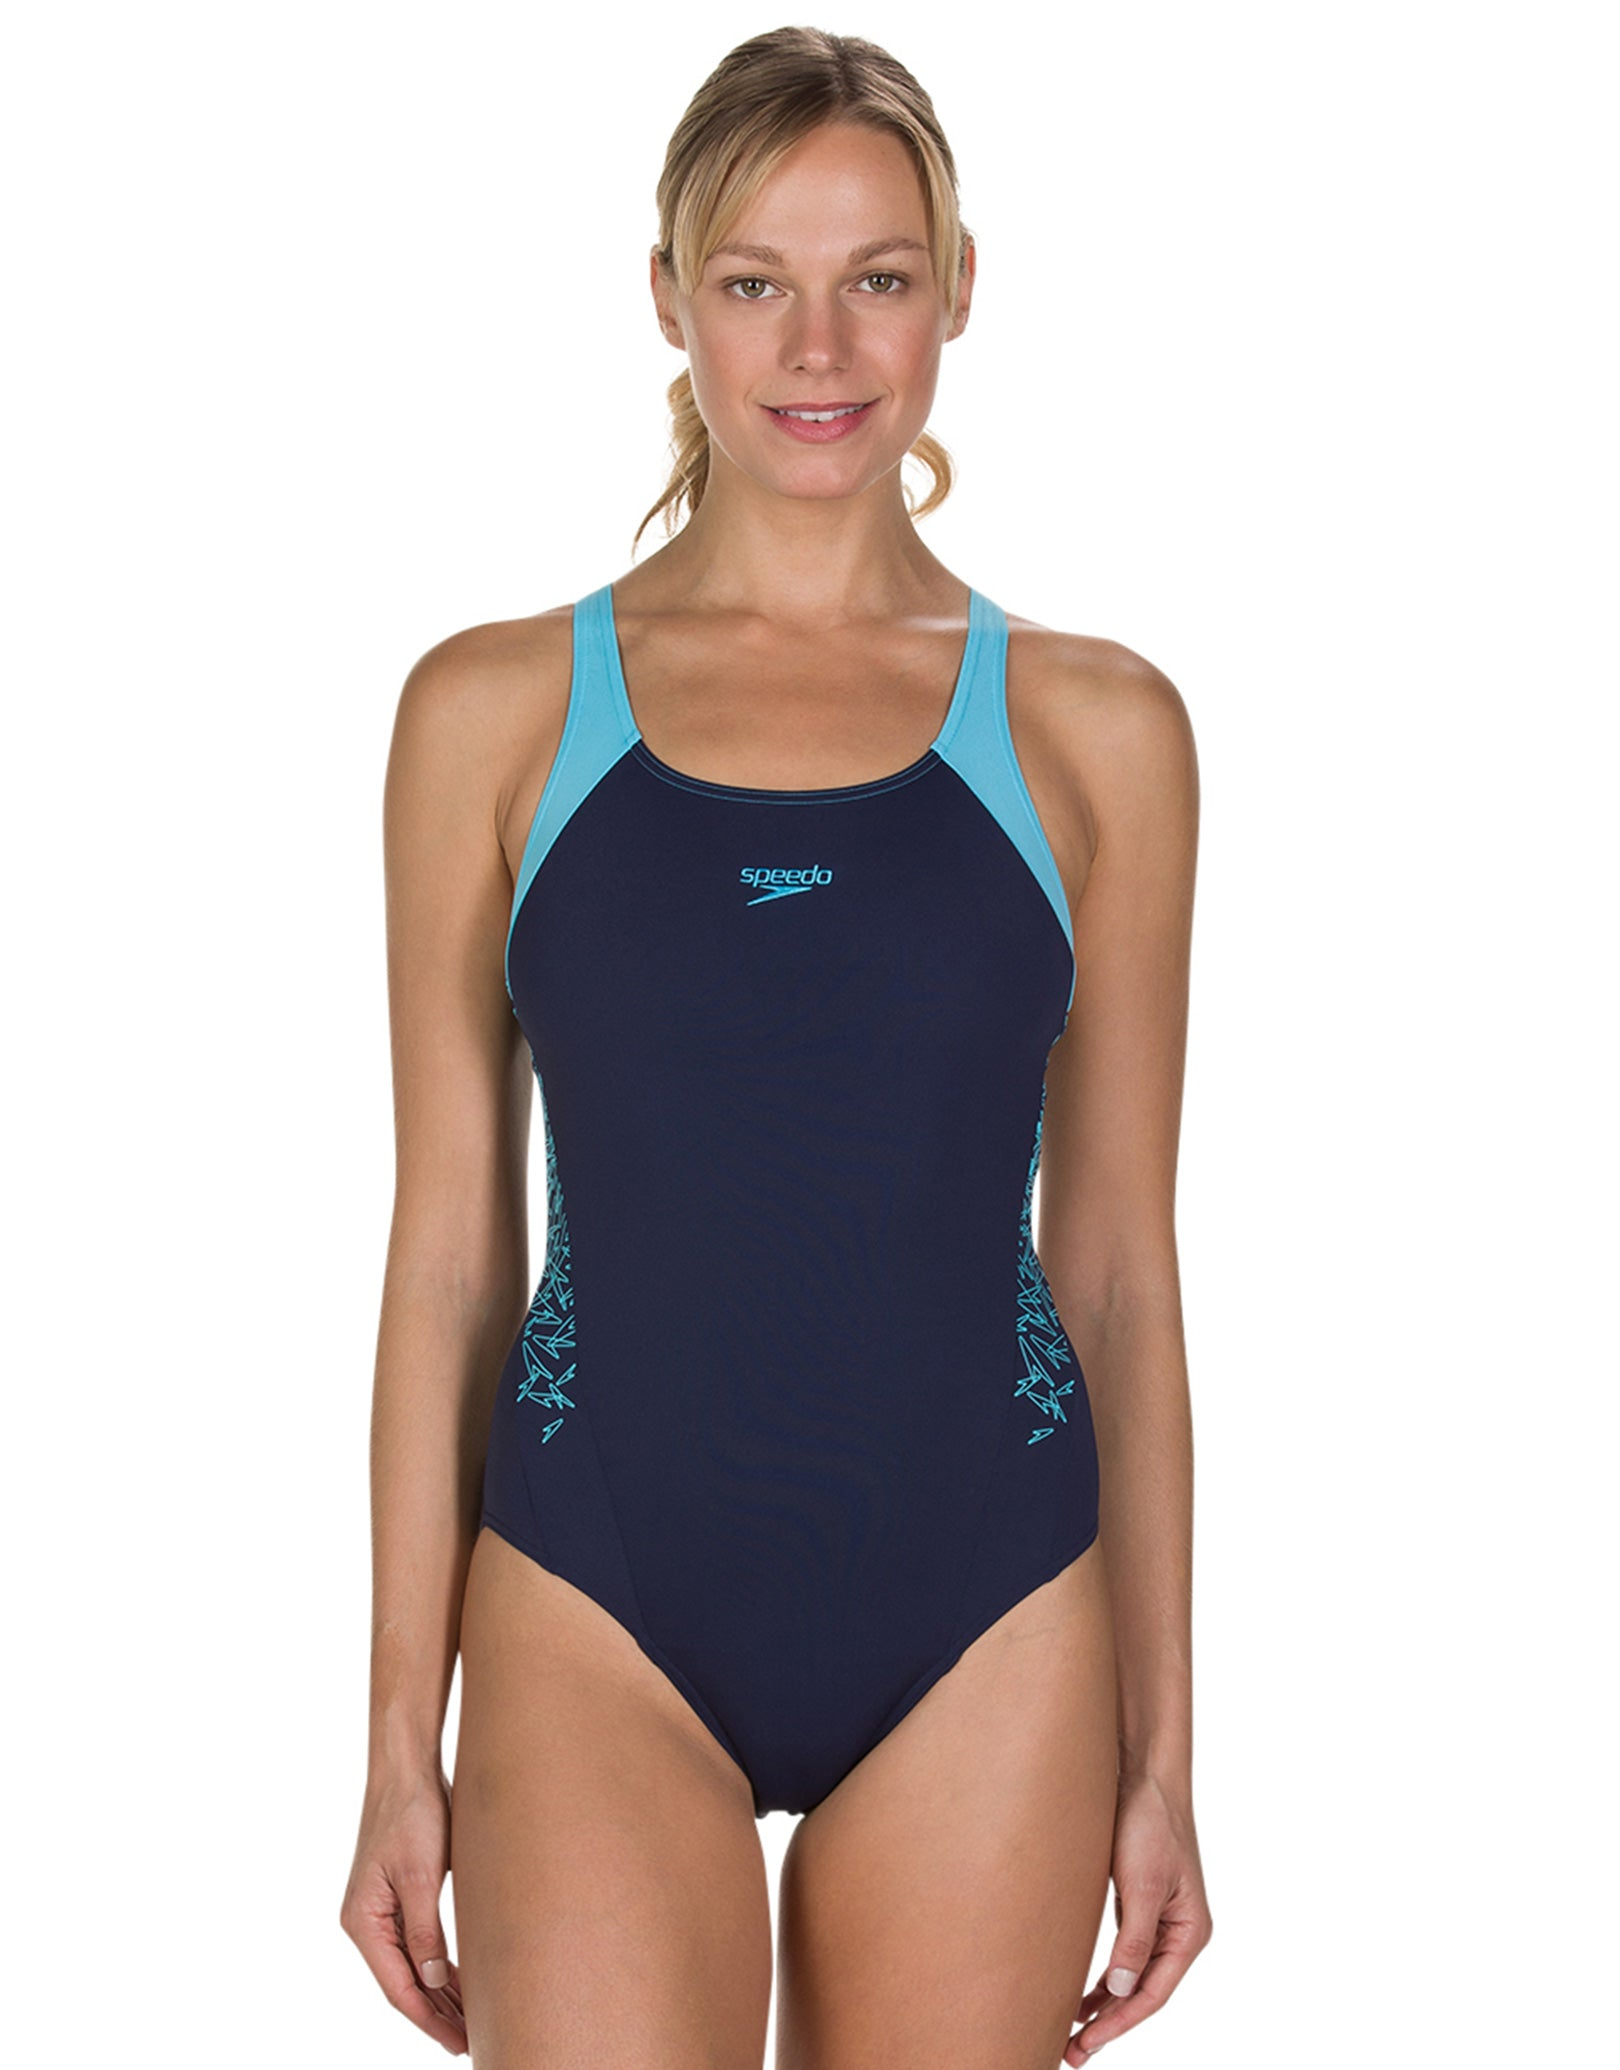 af5743f508631 Speedo Endurance Plus Boom Splice Muscleback Swimsuit - Navy and ...